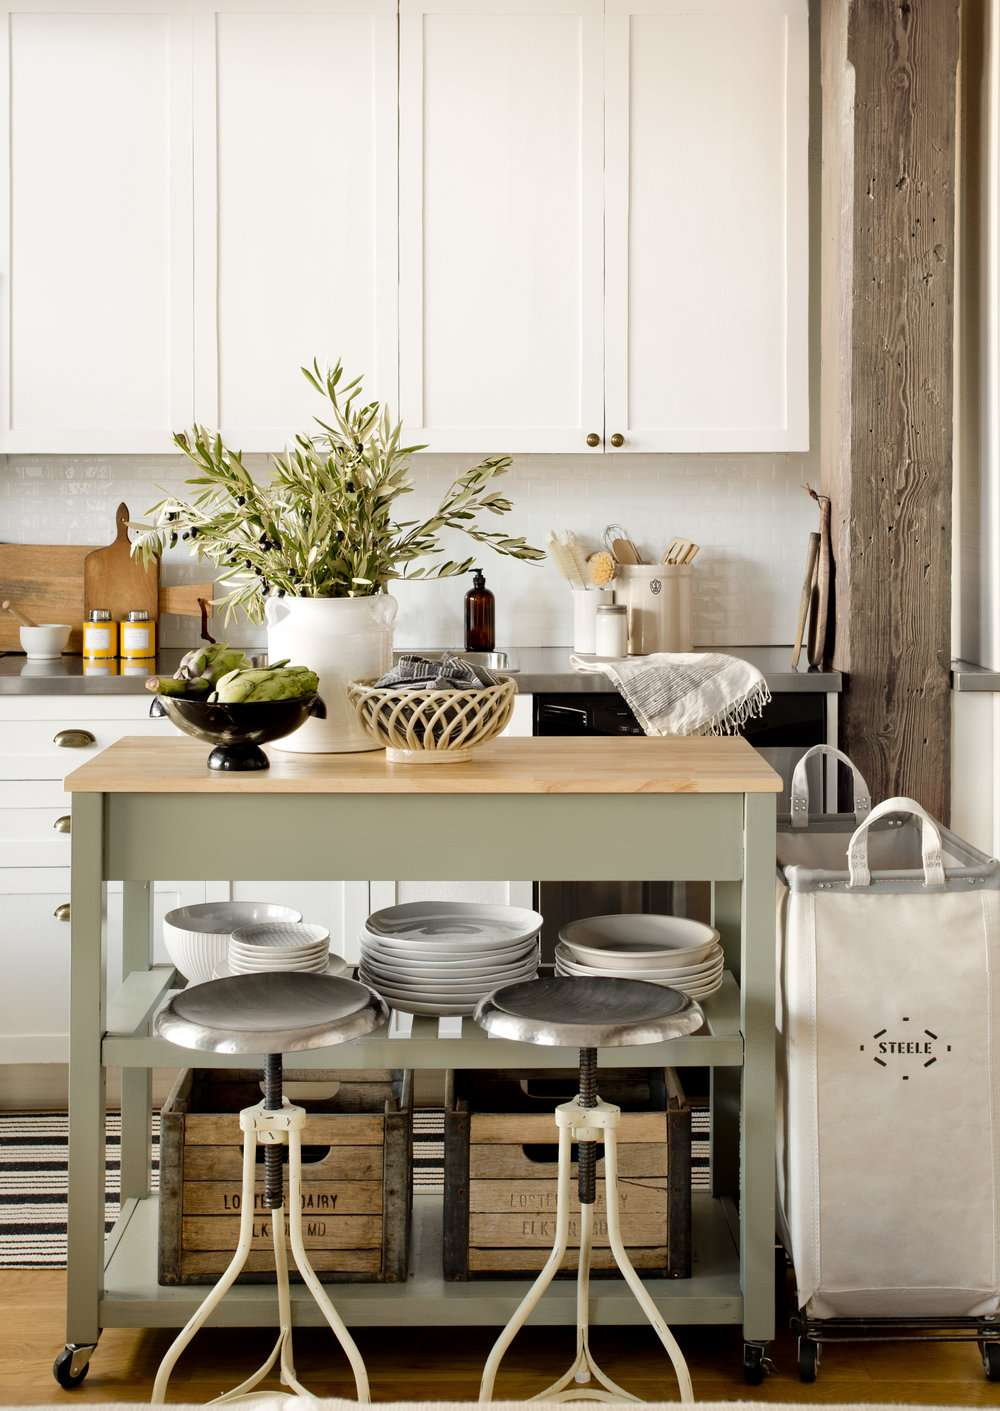 A rustic kitchen with exposed wood beams and other reclaimed wood accents